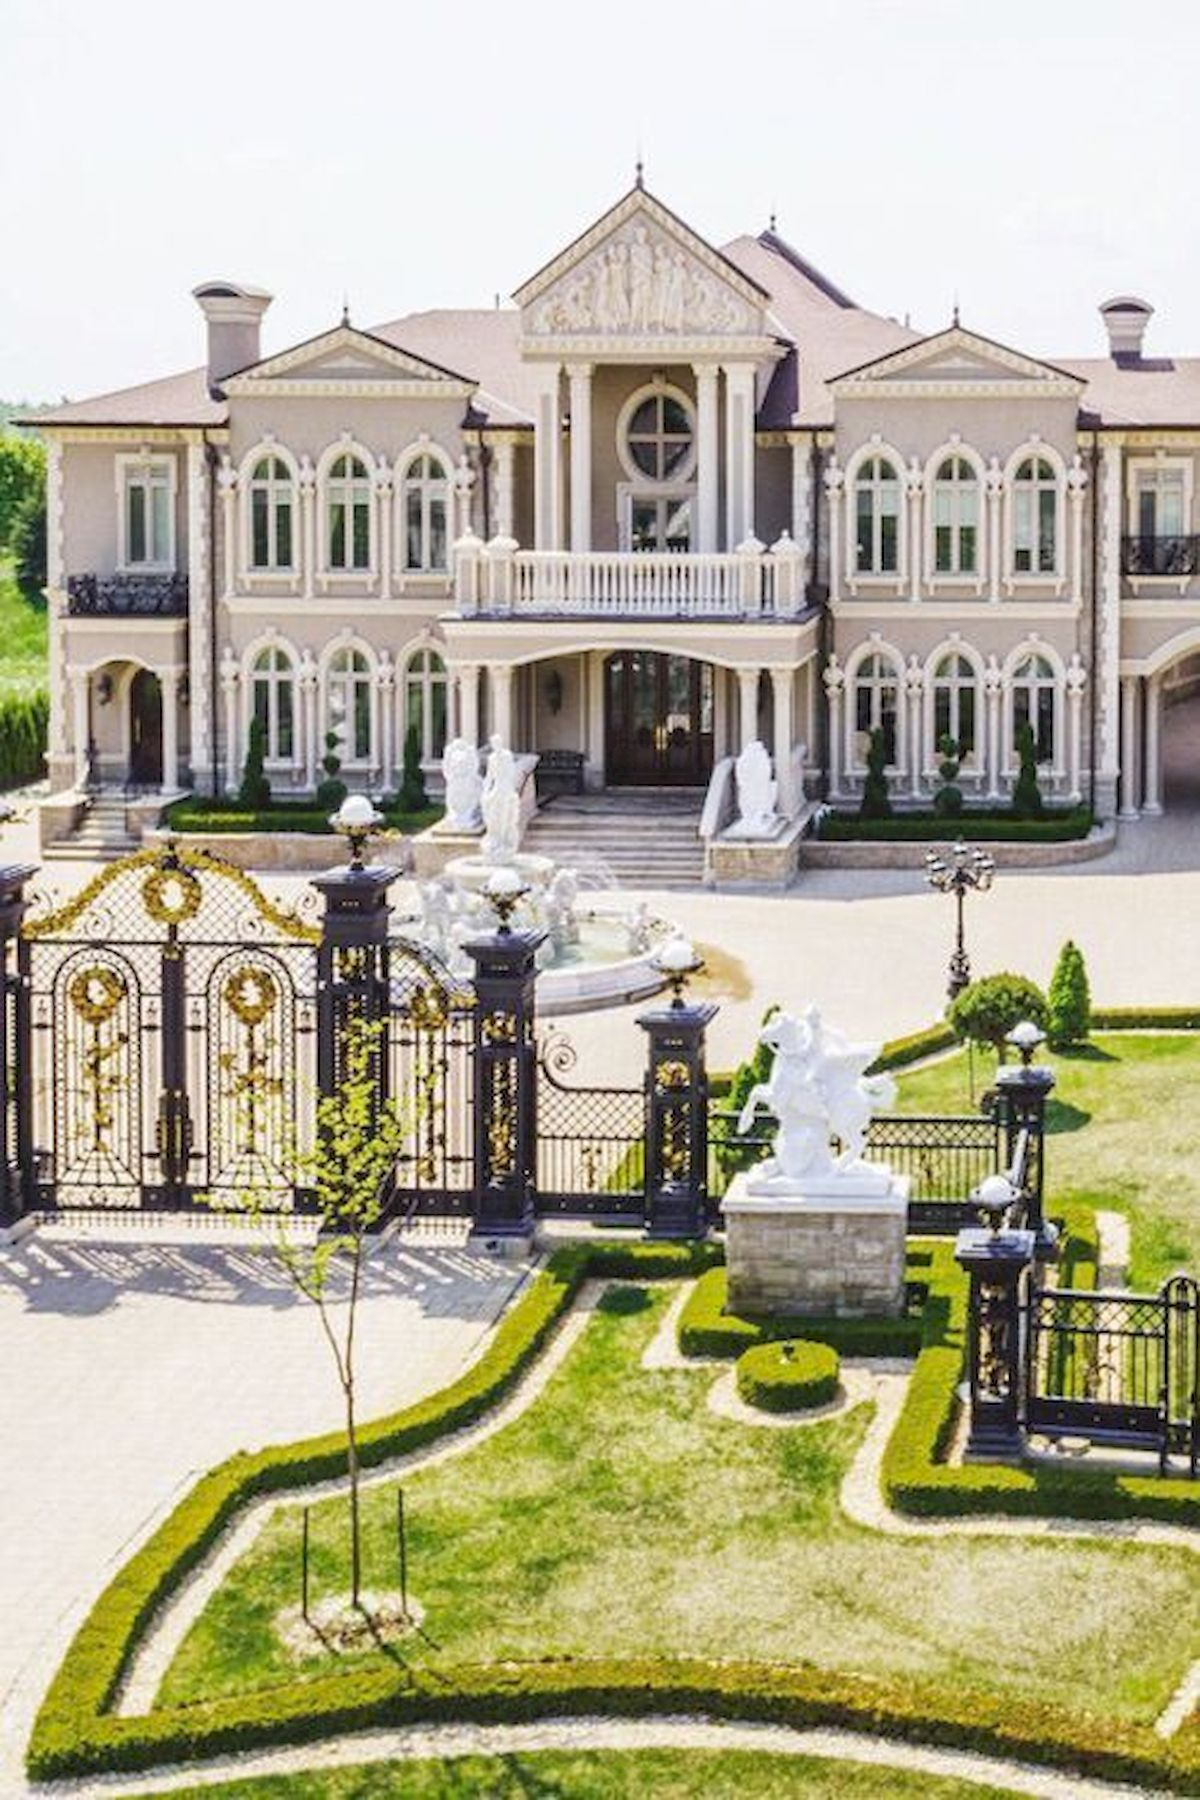 Awesome 40 Stunning Mansions Luxury Exterior Design Ideas Https Livingmarch Com 40 Stunning Luxury Exterior Luxury Homes Dream Houses House Designs Exterior